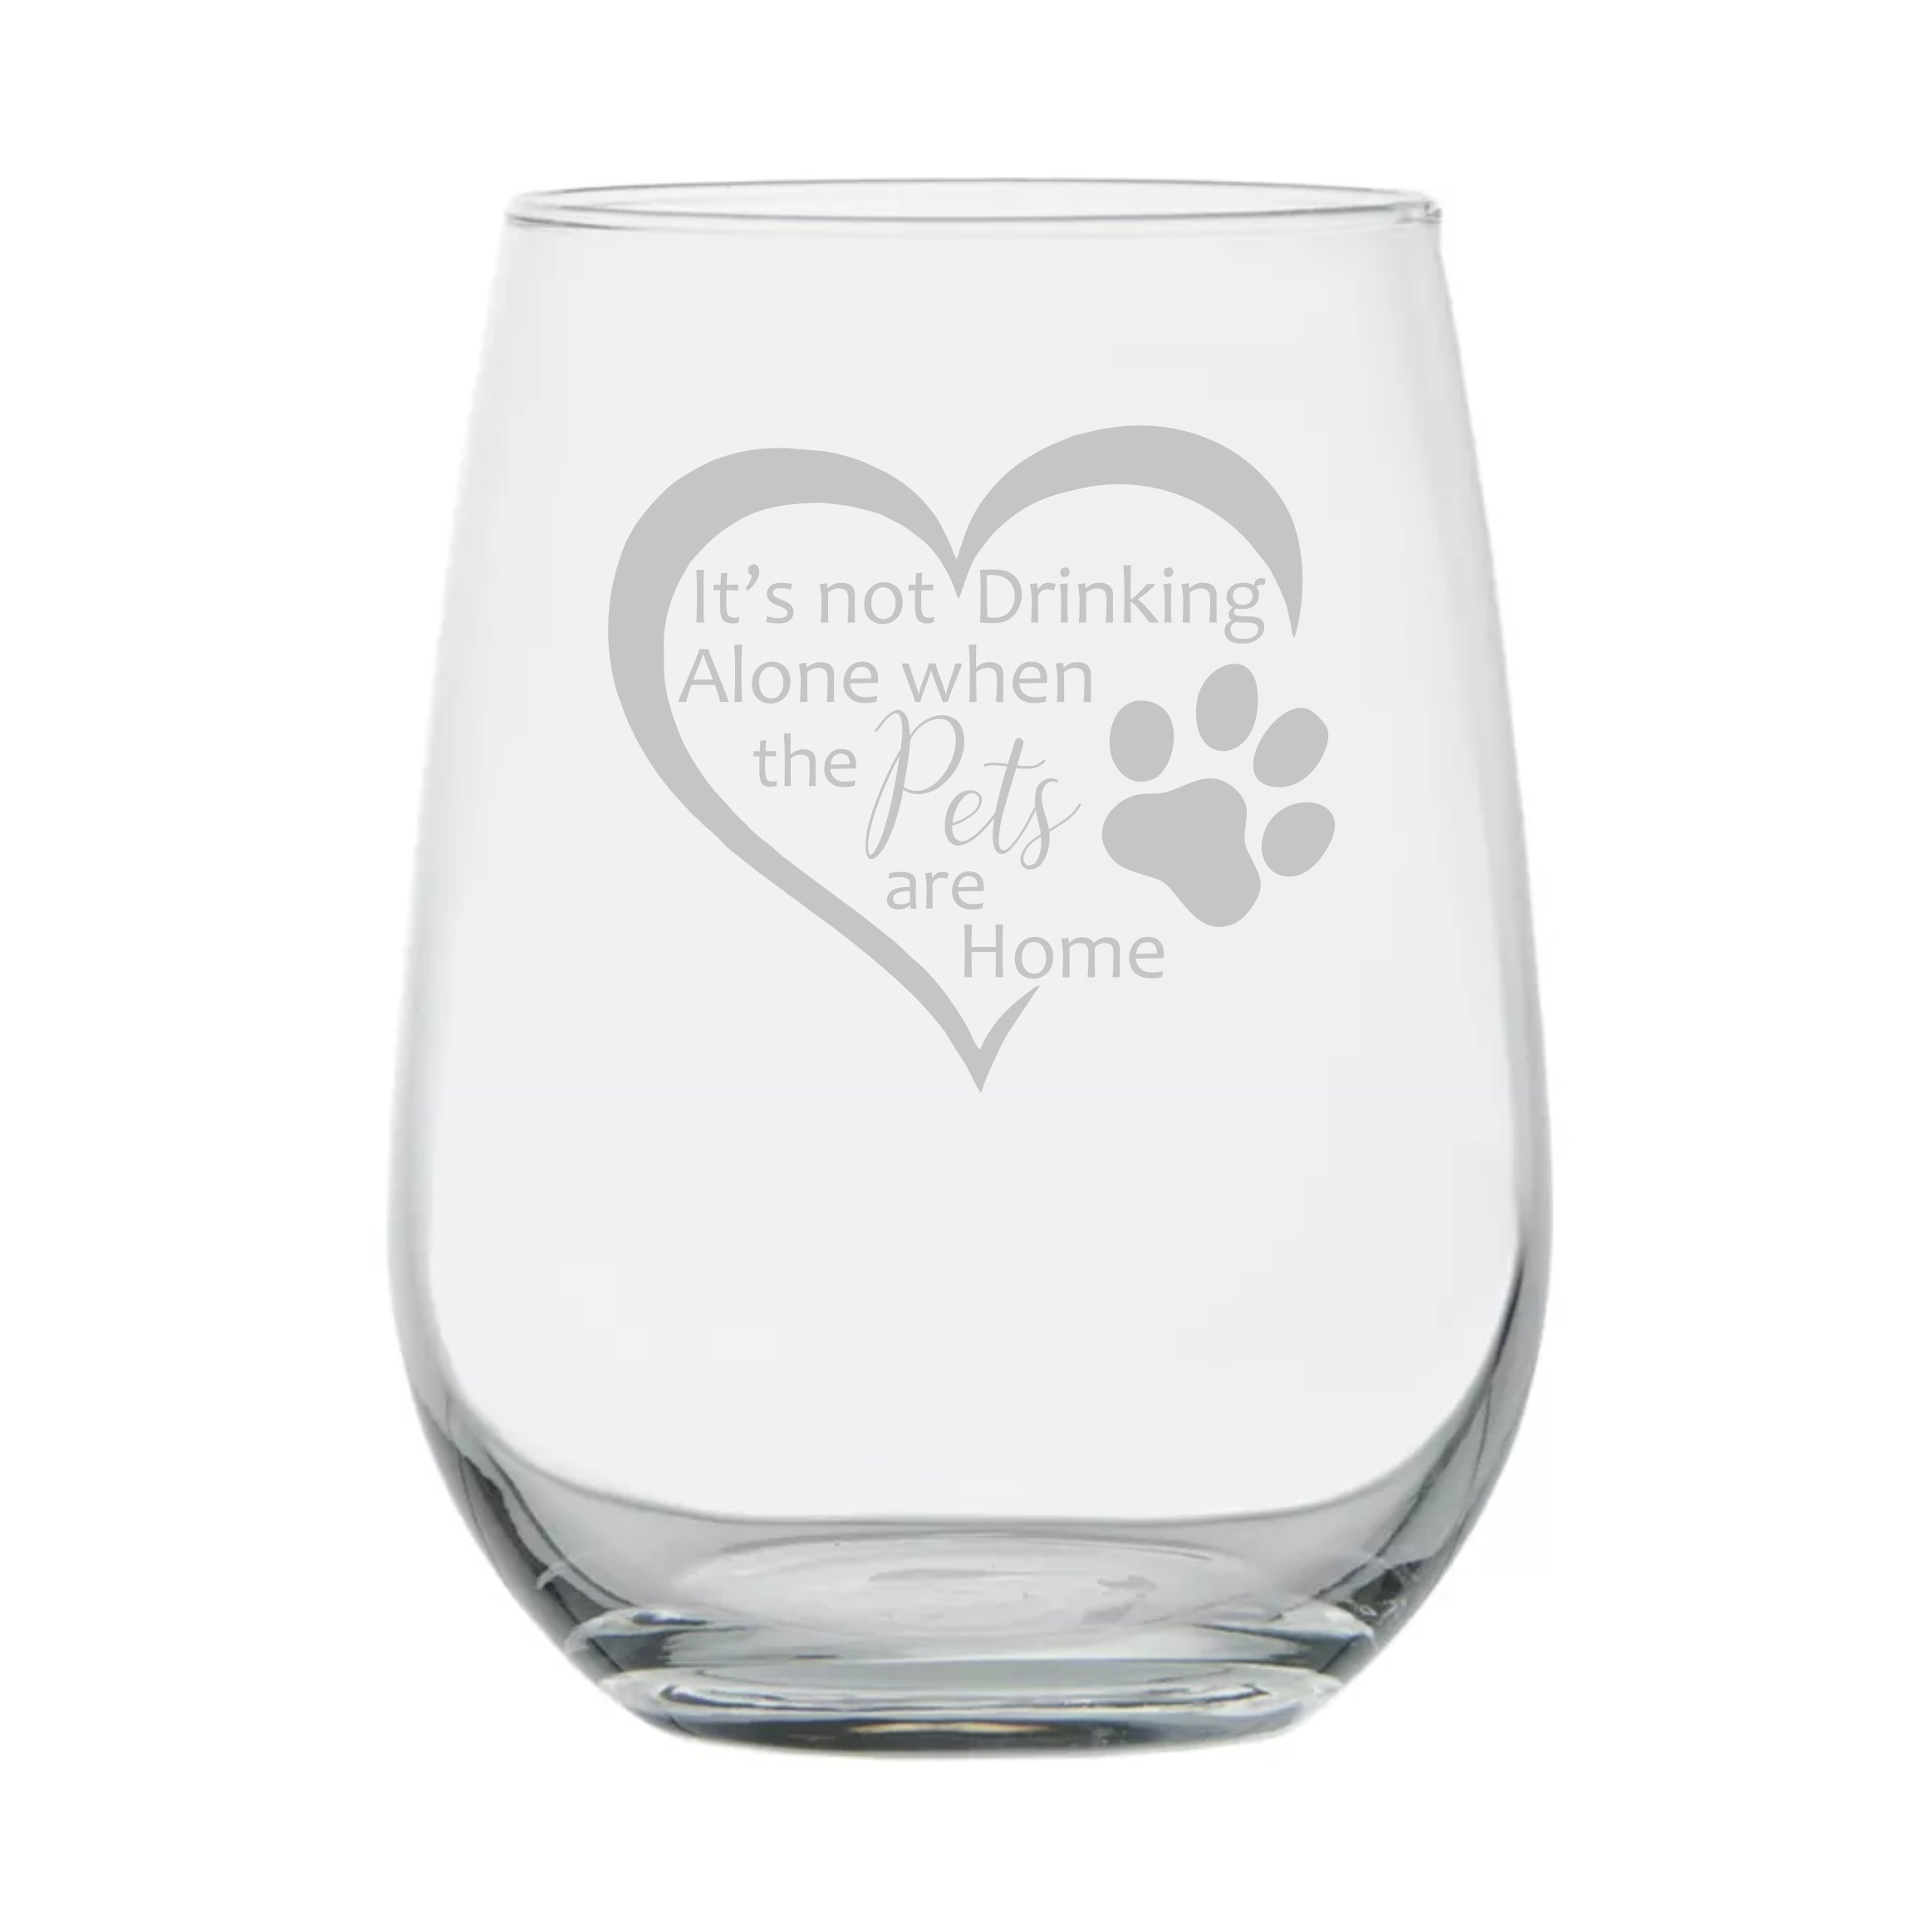 Animal Lover Gifts ★ It's Not Drinking Alone when the Pets are Home ★ 17 oz Dishwasher Safe ★ Wine Gifts ★ Animal Rescue ★ Gift for Women ★ Mom ★ Birthday Glass ★ Funny ★ Couples Anniversary